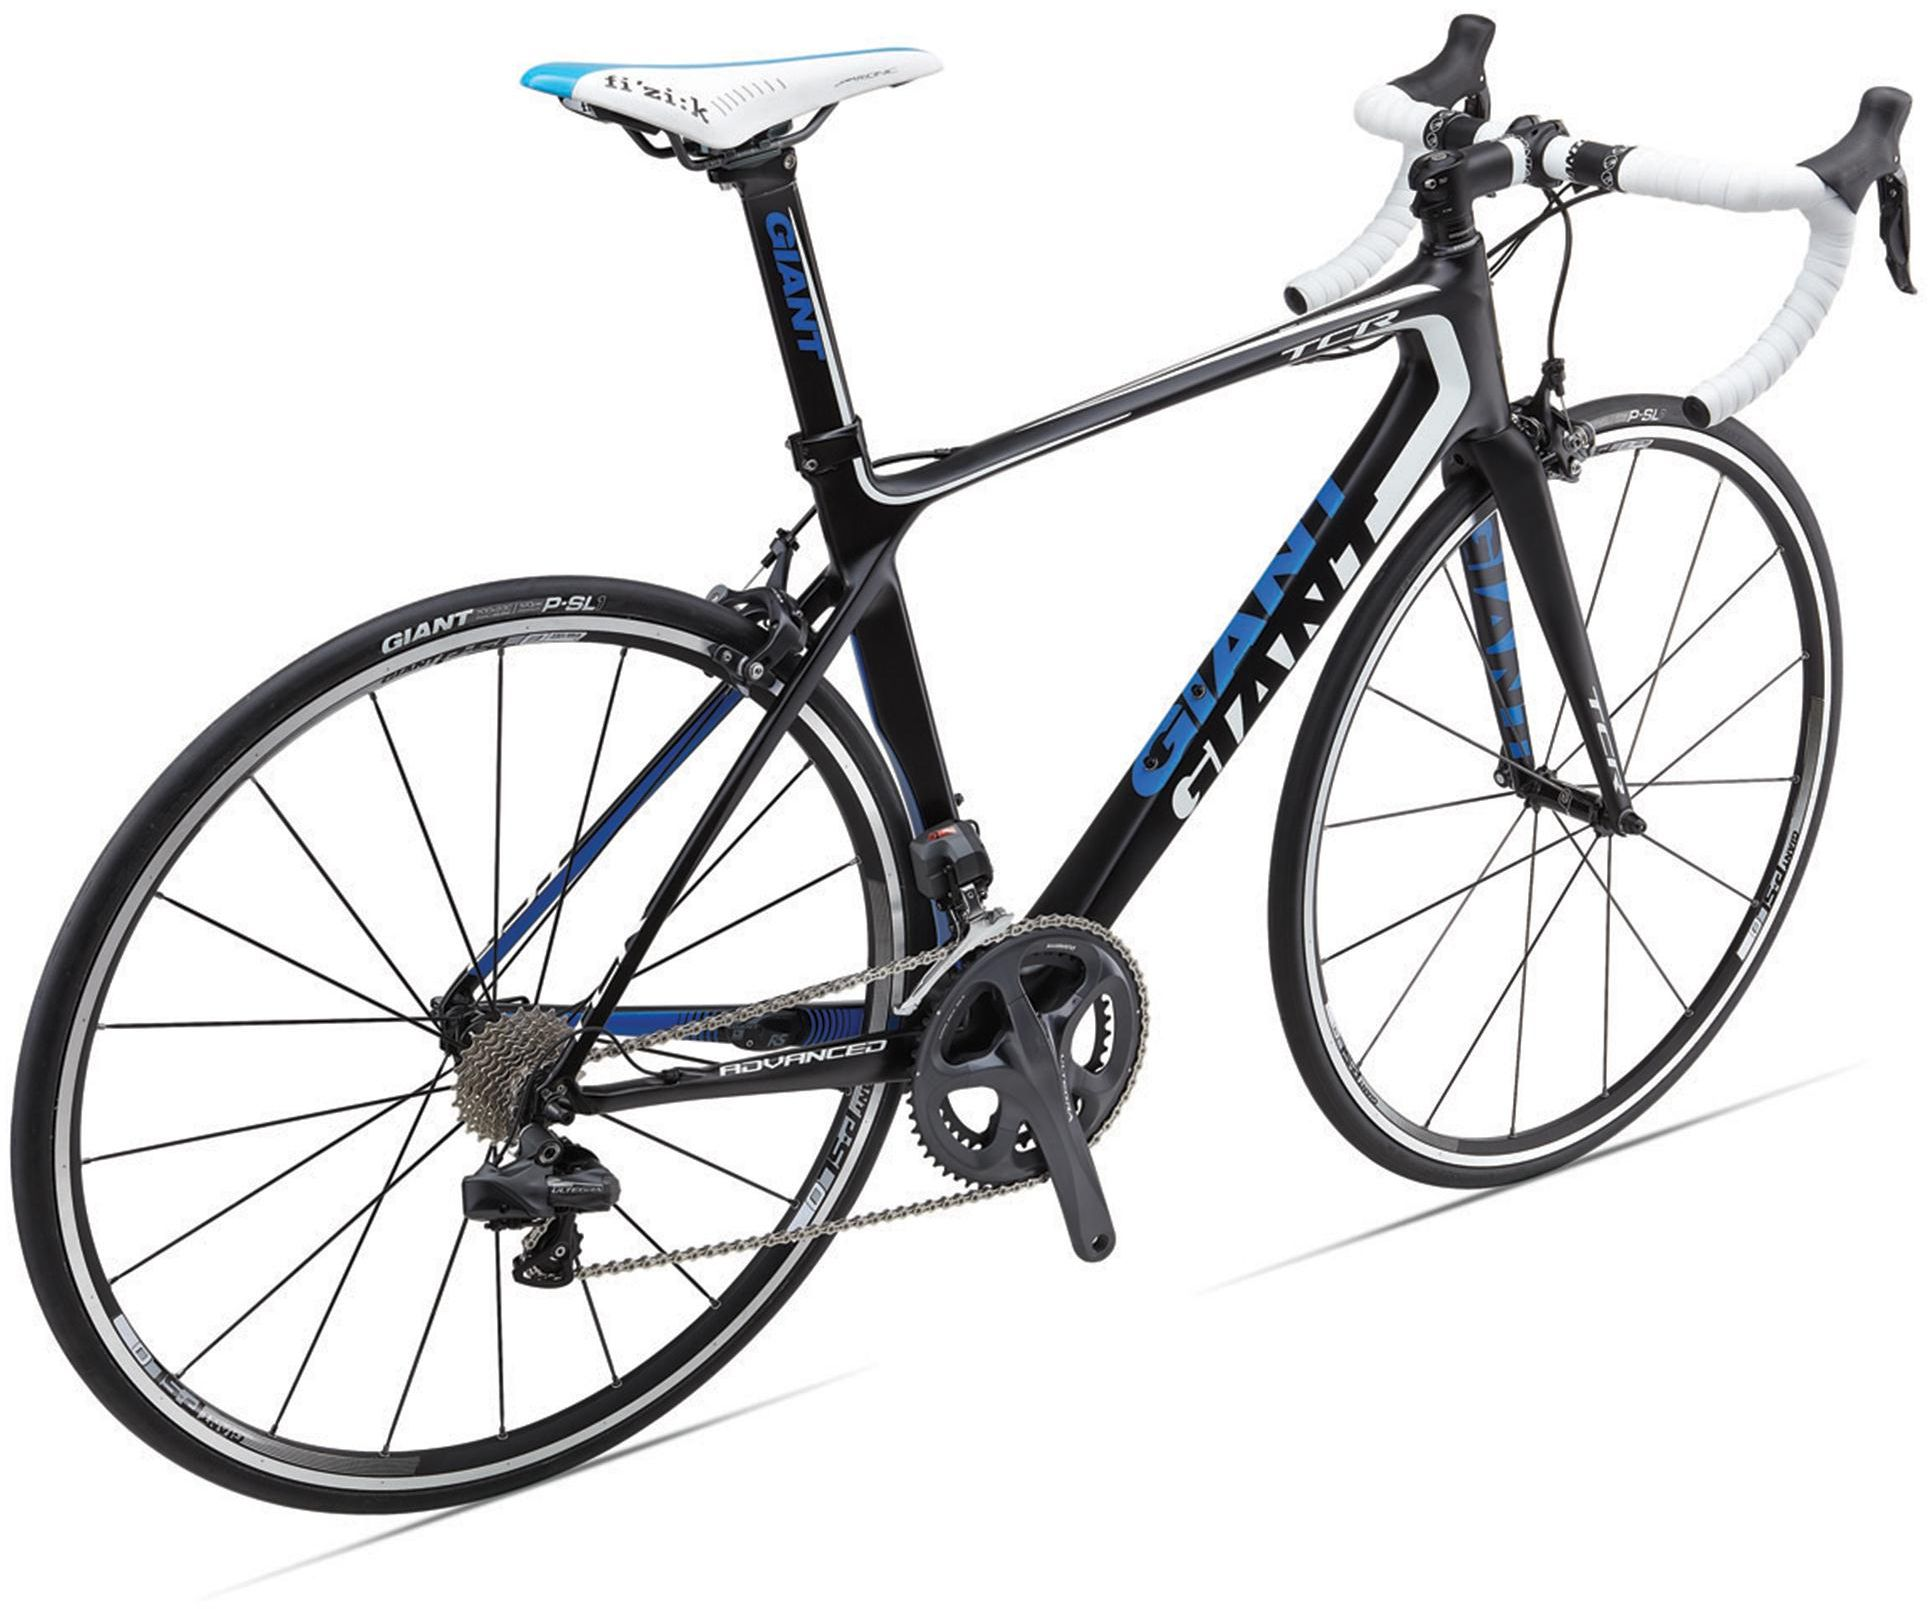 Giant Tcr Advanced 0 2013 Review The Bike List